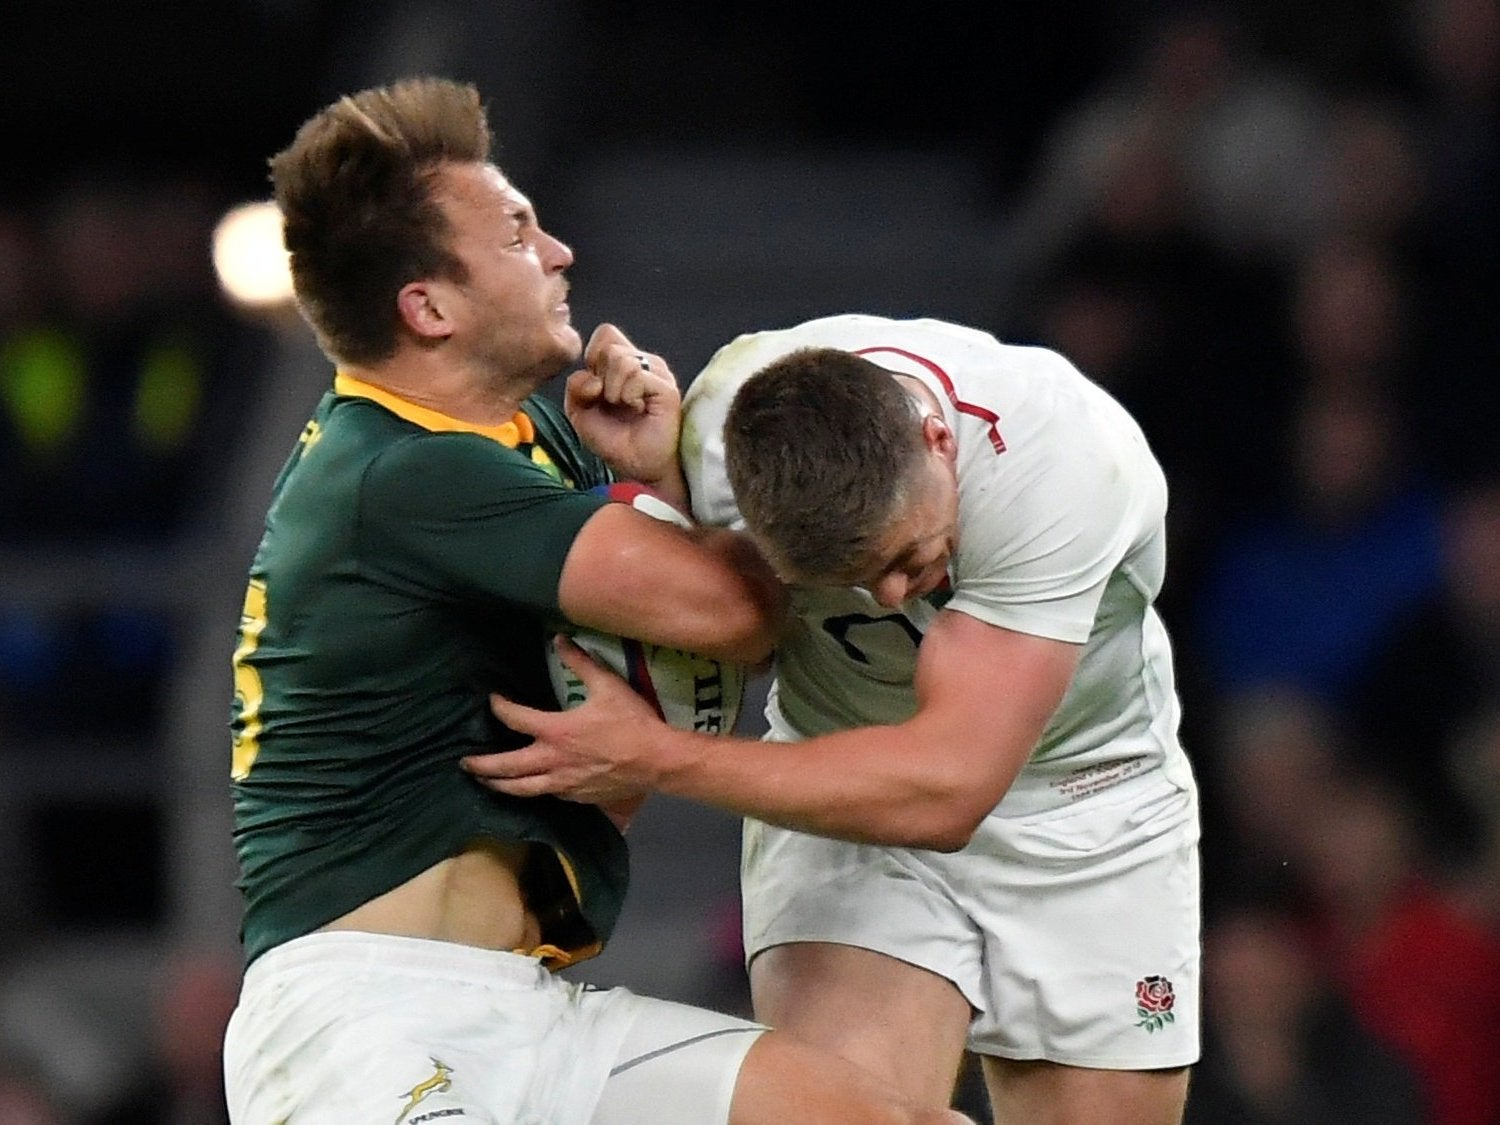 Rugby World Cup: Owen Farrell has adjusted his tackle technique following high-tackle controversies